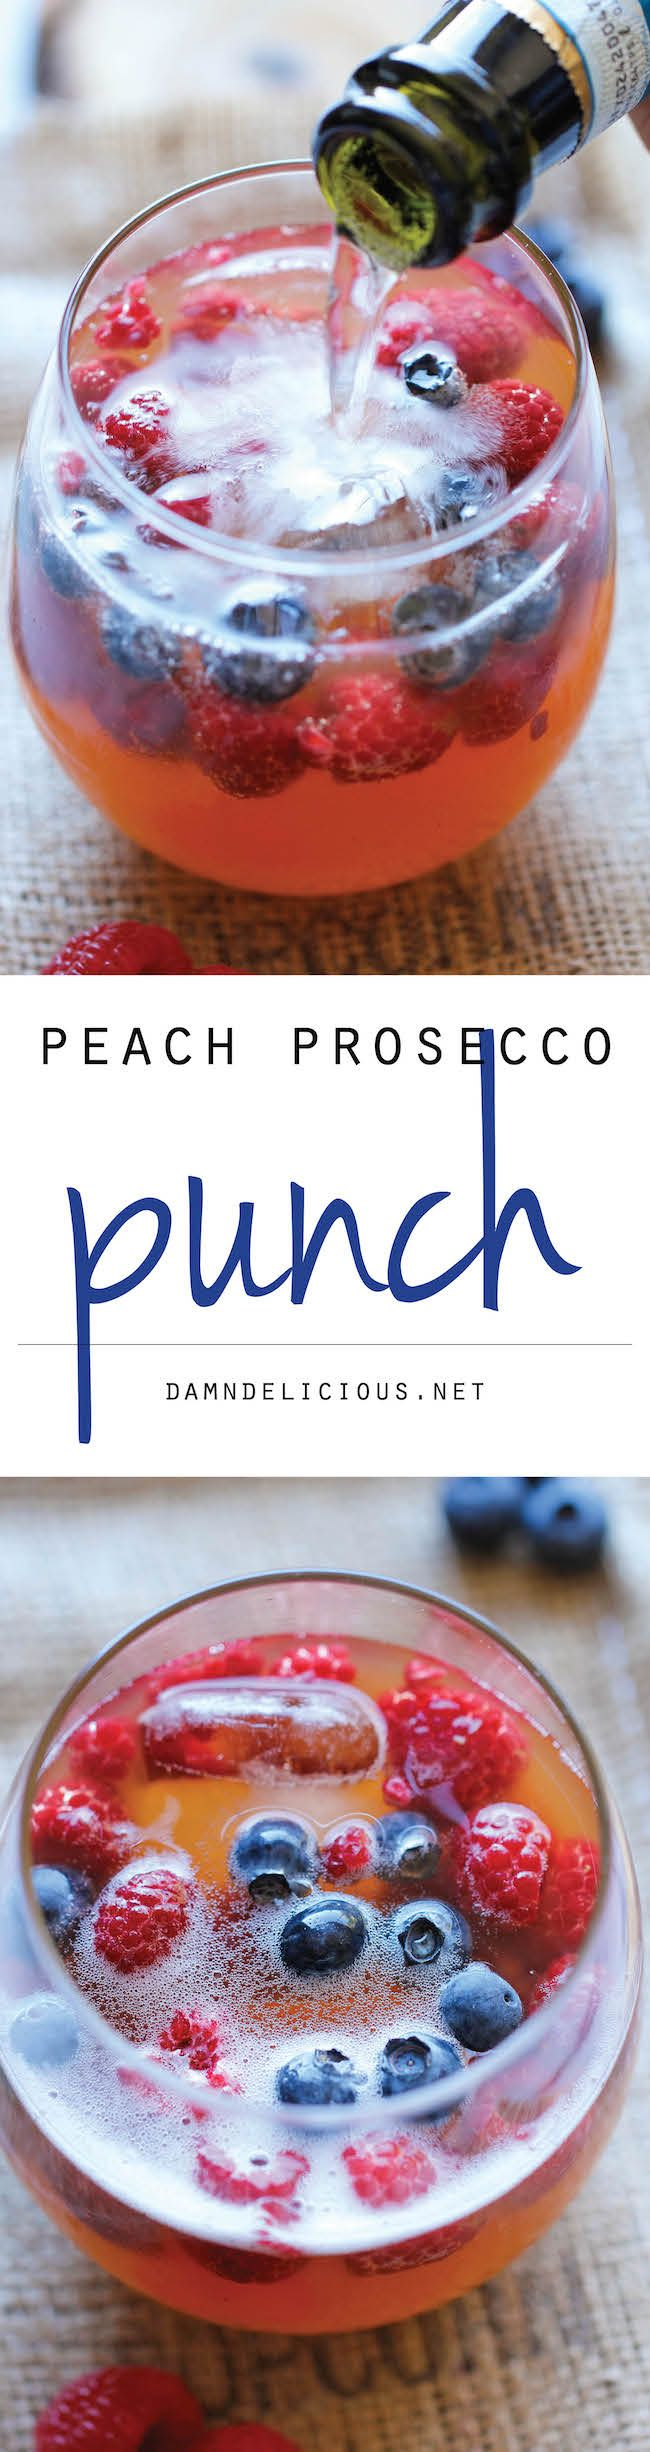 Peach Prosecco Punch - An incredibly refreshing, bubbly party punch ...